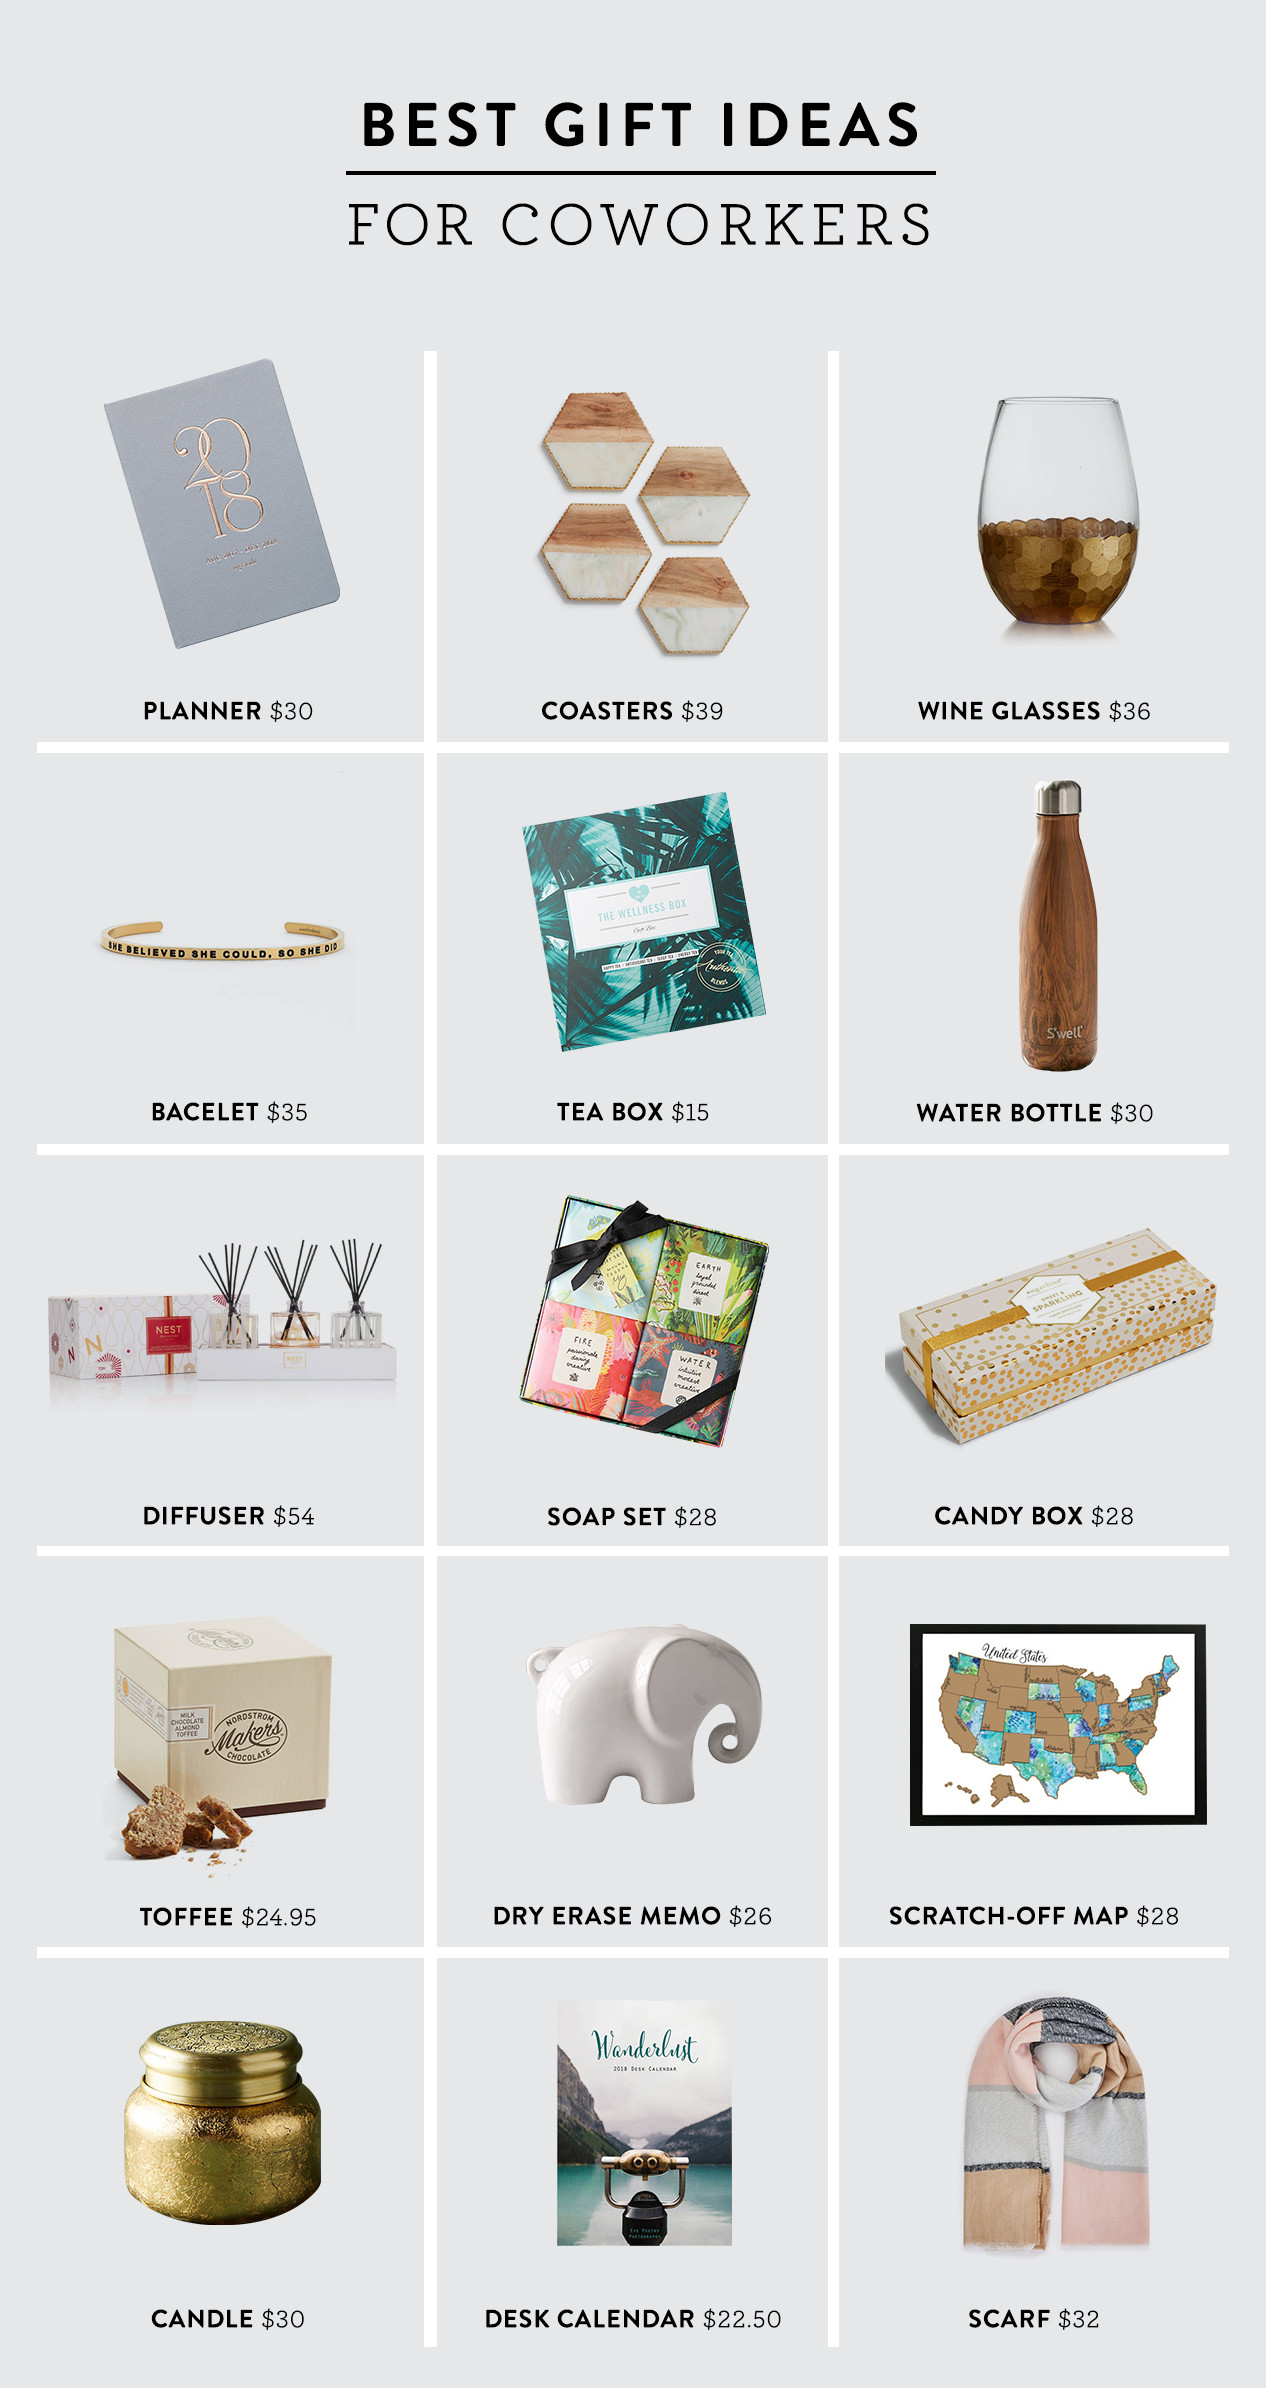 Best ideas about Gift Ideas For Colleagues . Save or Pin Best Gift Ideas for Coworkers Now.